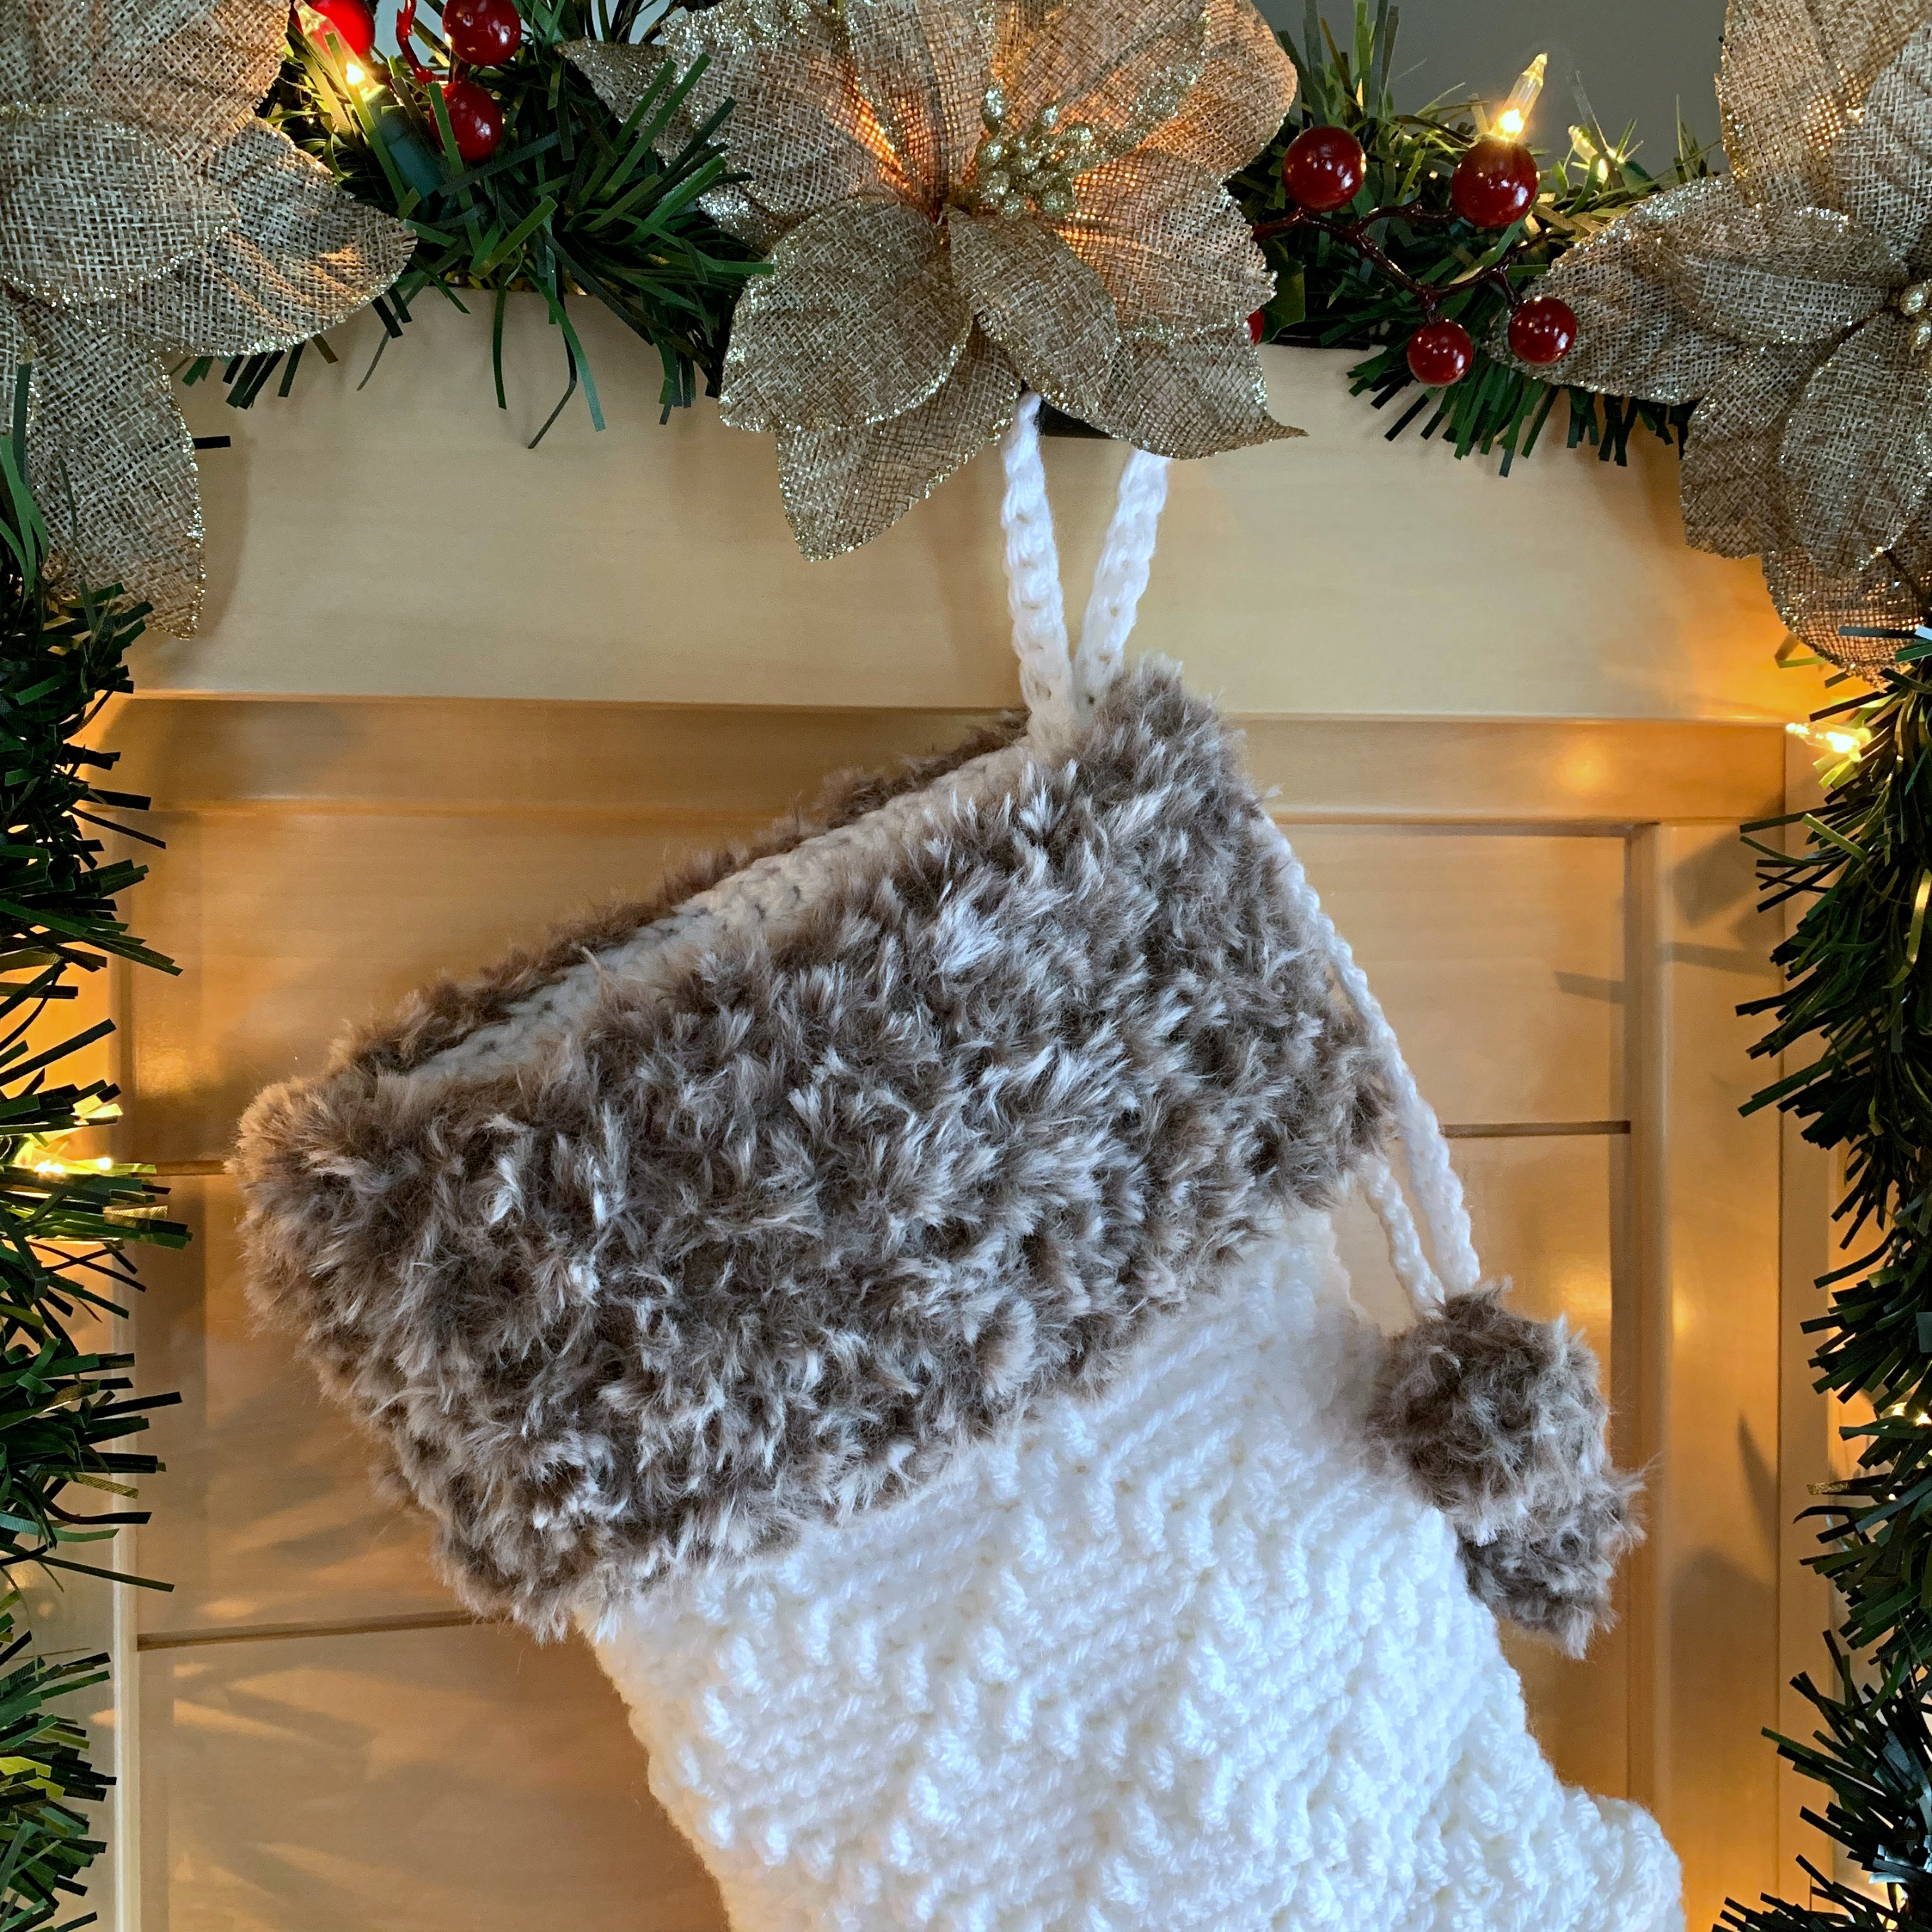 Free Crochet Pattern - Diamonds & Fur Christmas Stocking by A Crocheted Simplicity#freecrochetstockingpattern #freecrochetpattern #crochetchristmas #christmasstockingpattern #crochet #handmadestocking